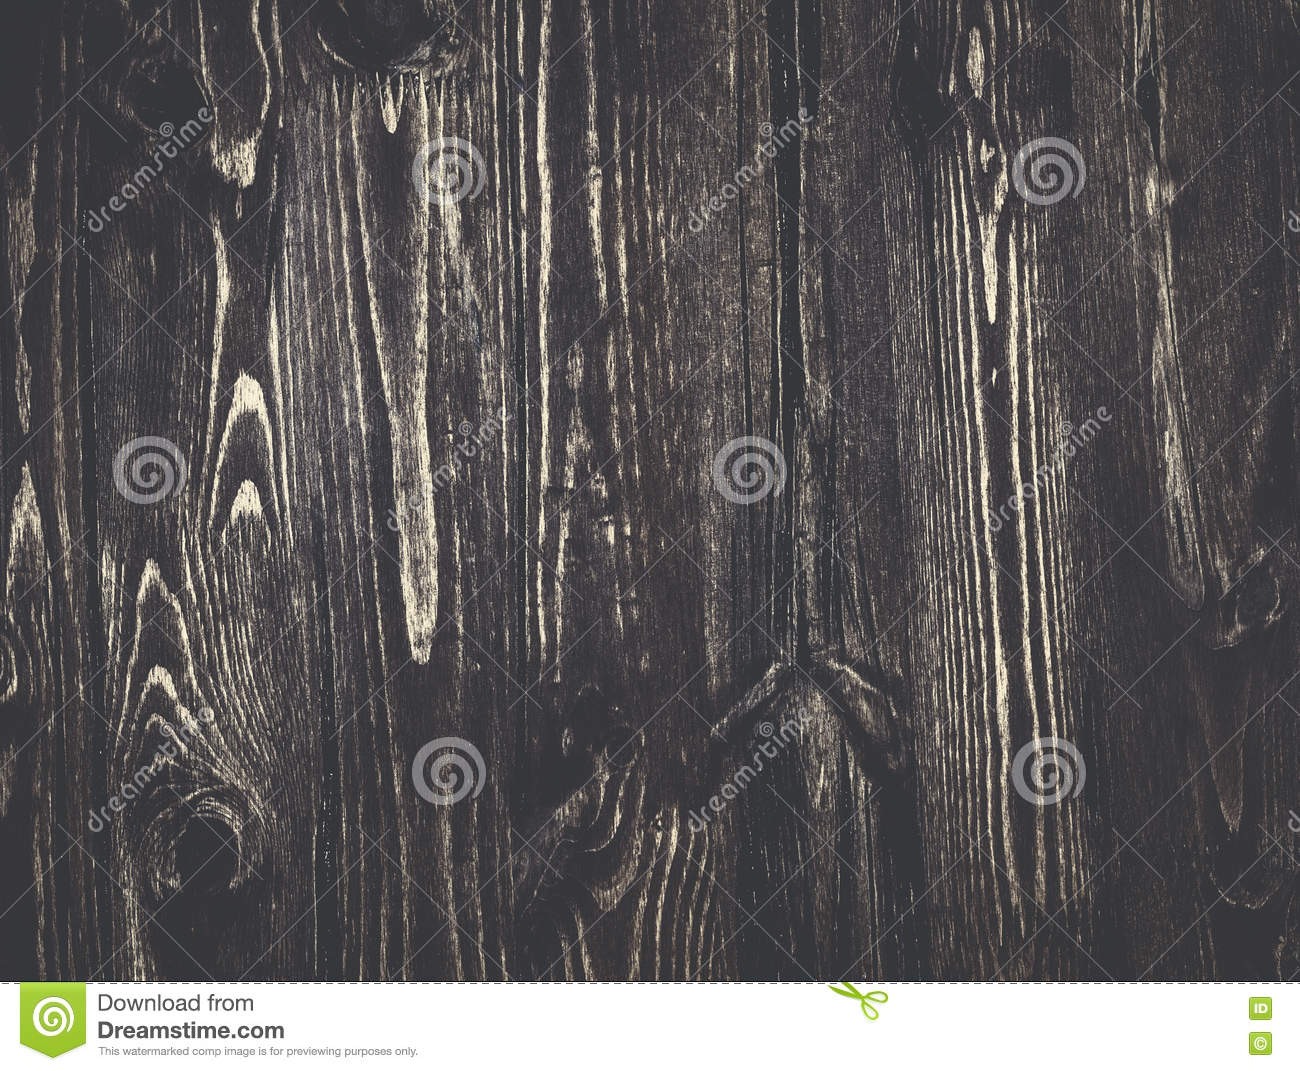 Old vintage white natural wood or wooden texture background or - Background Brown Dark Old Texture Vintage Wooden